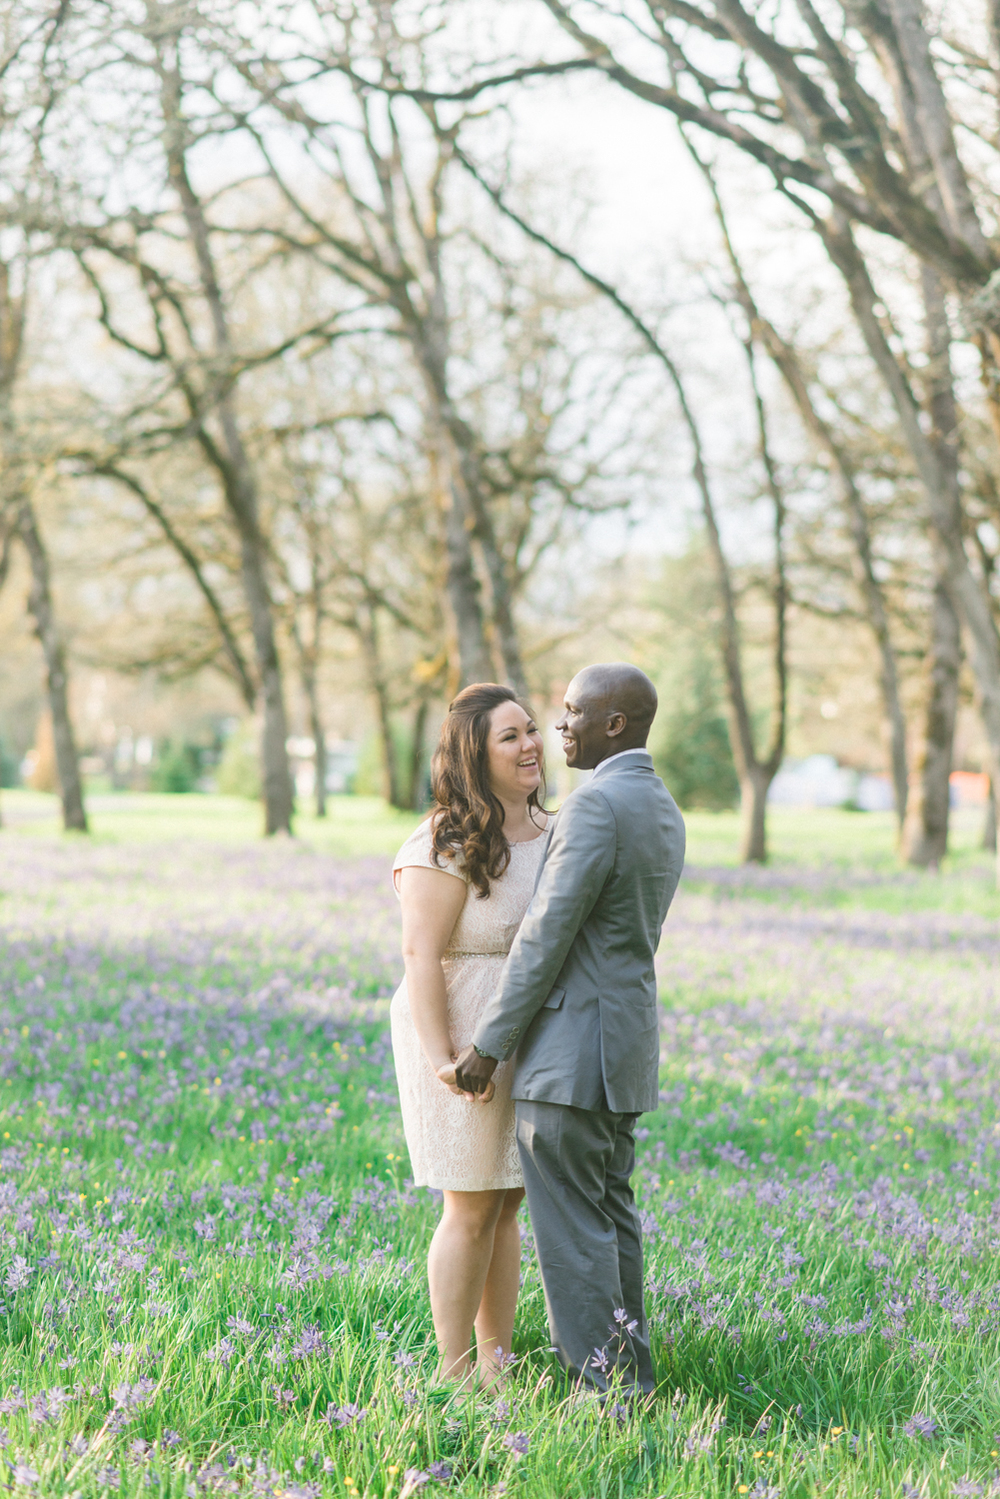 romantic-salem-engagement-photos-bush-park-shelley-marie-photo-10